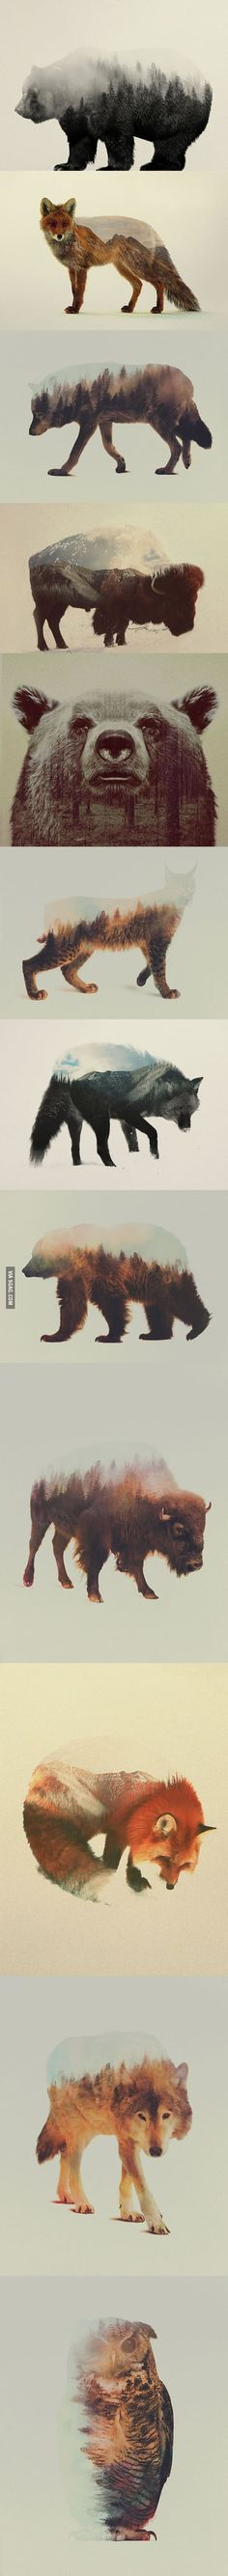 Double Exposure Portraits of Animals Reflecting Their Habitat by Andreas Lie